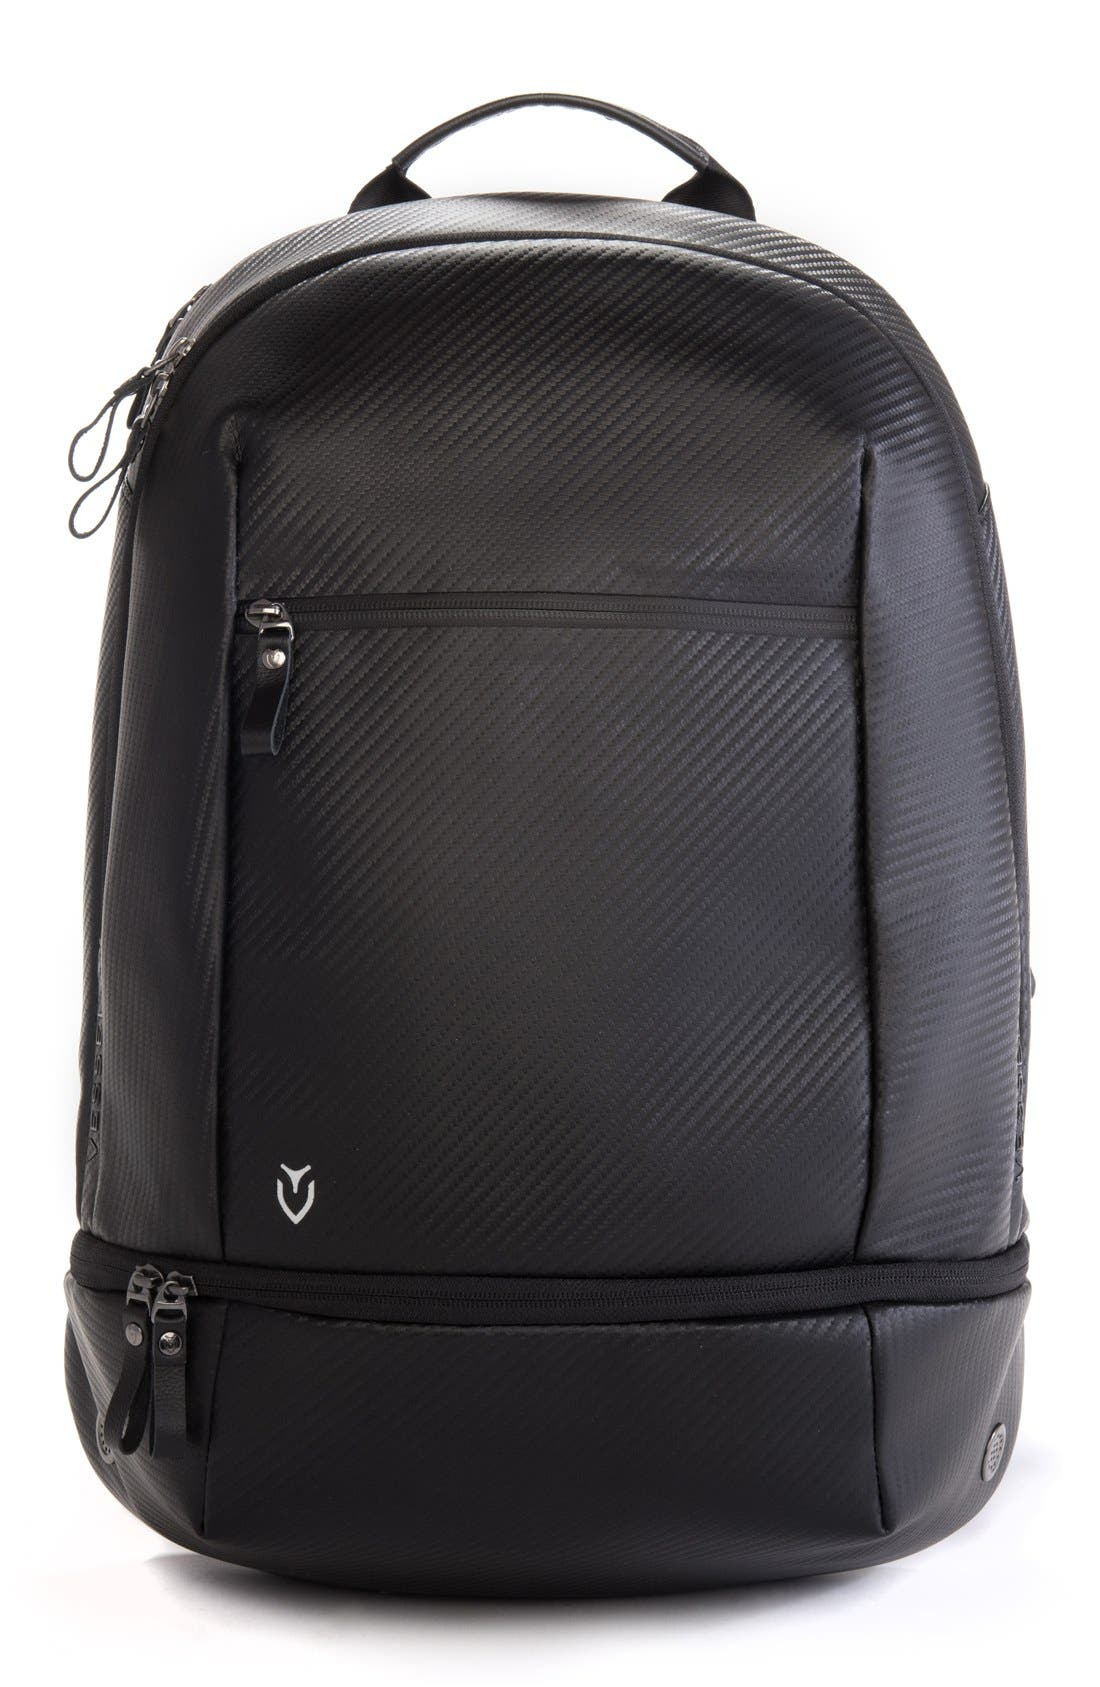 Vessel 'Signature' Backpack